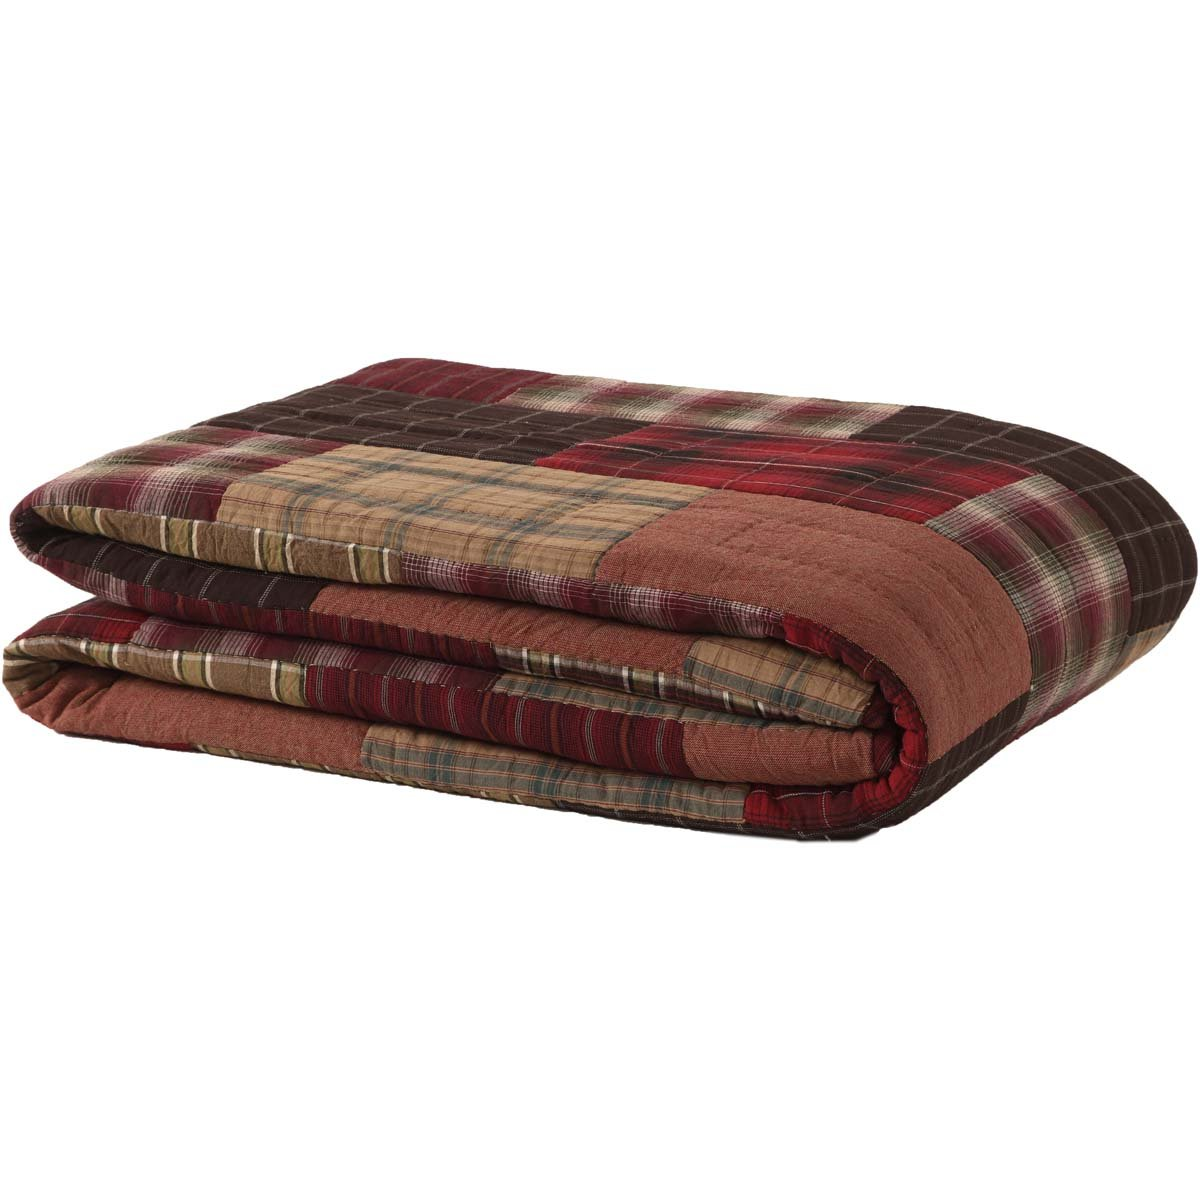 VHC Brands Rustic & Lodge Bedding - Wyatt Red Quilt, Queen, by VHC Brands (Image #3)